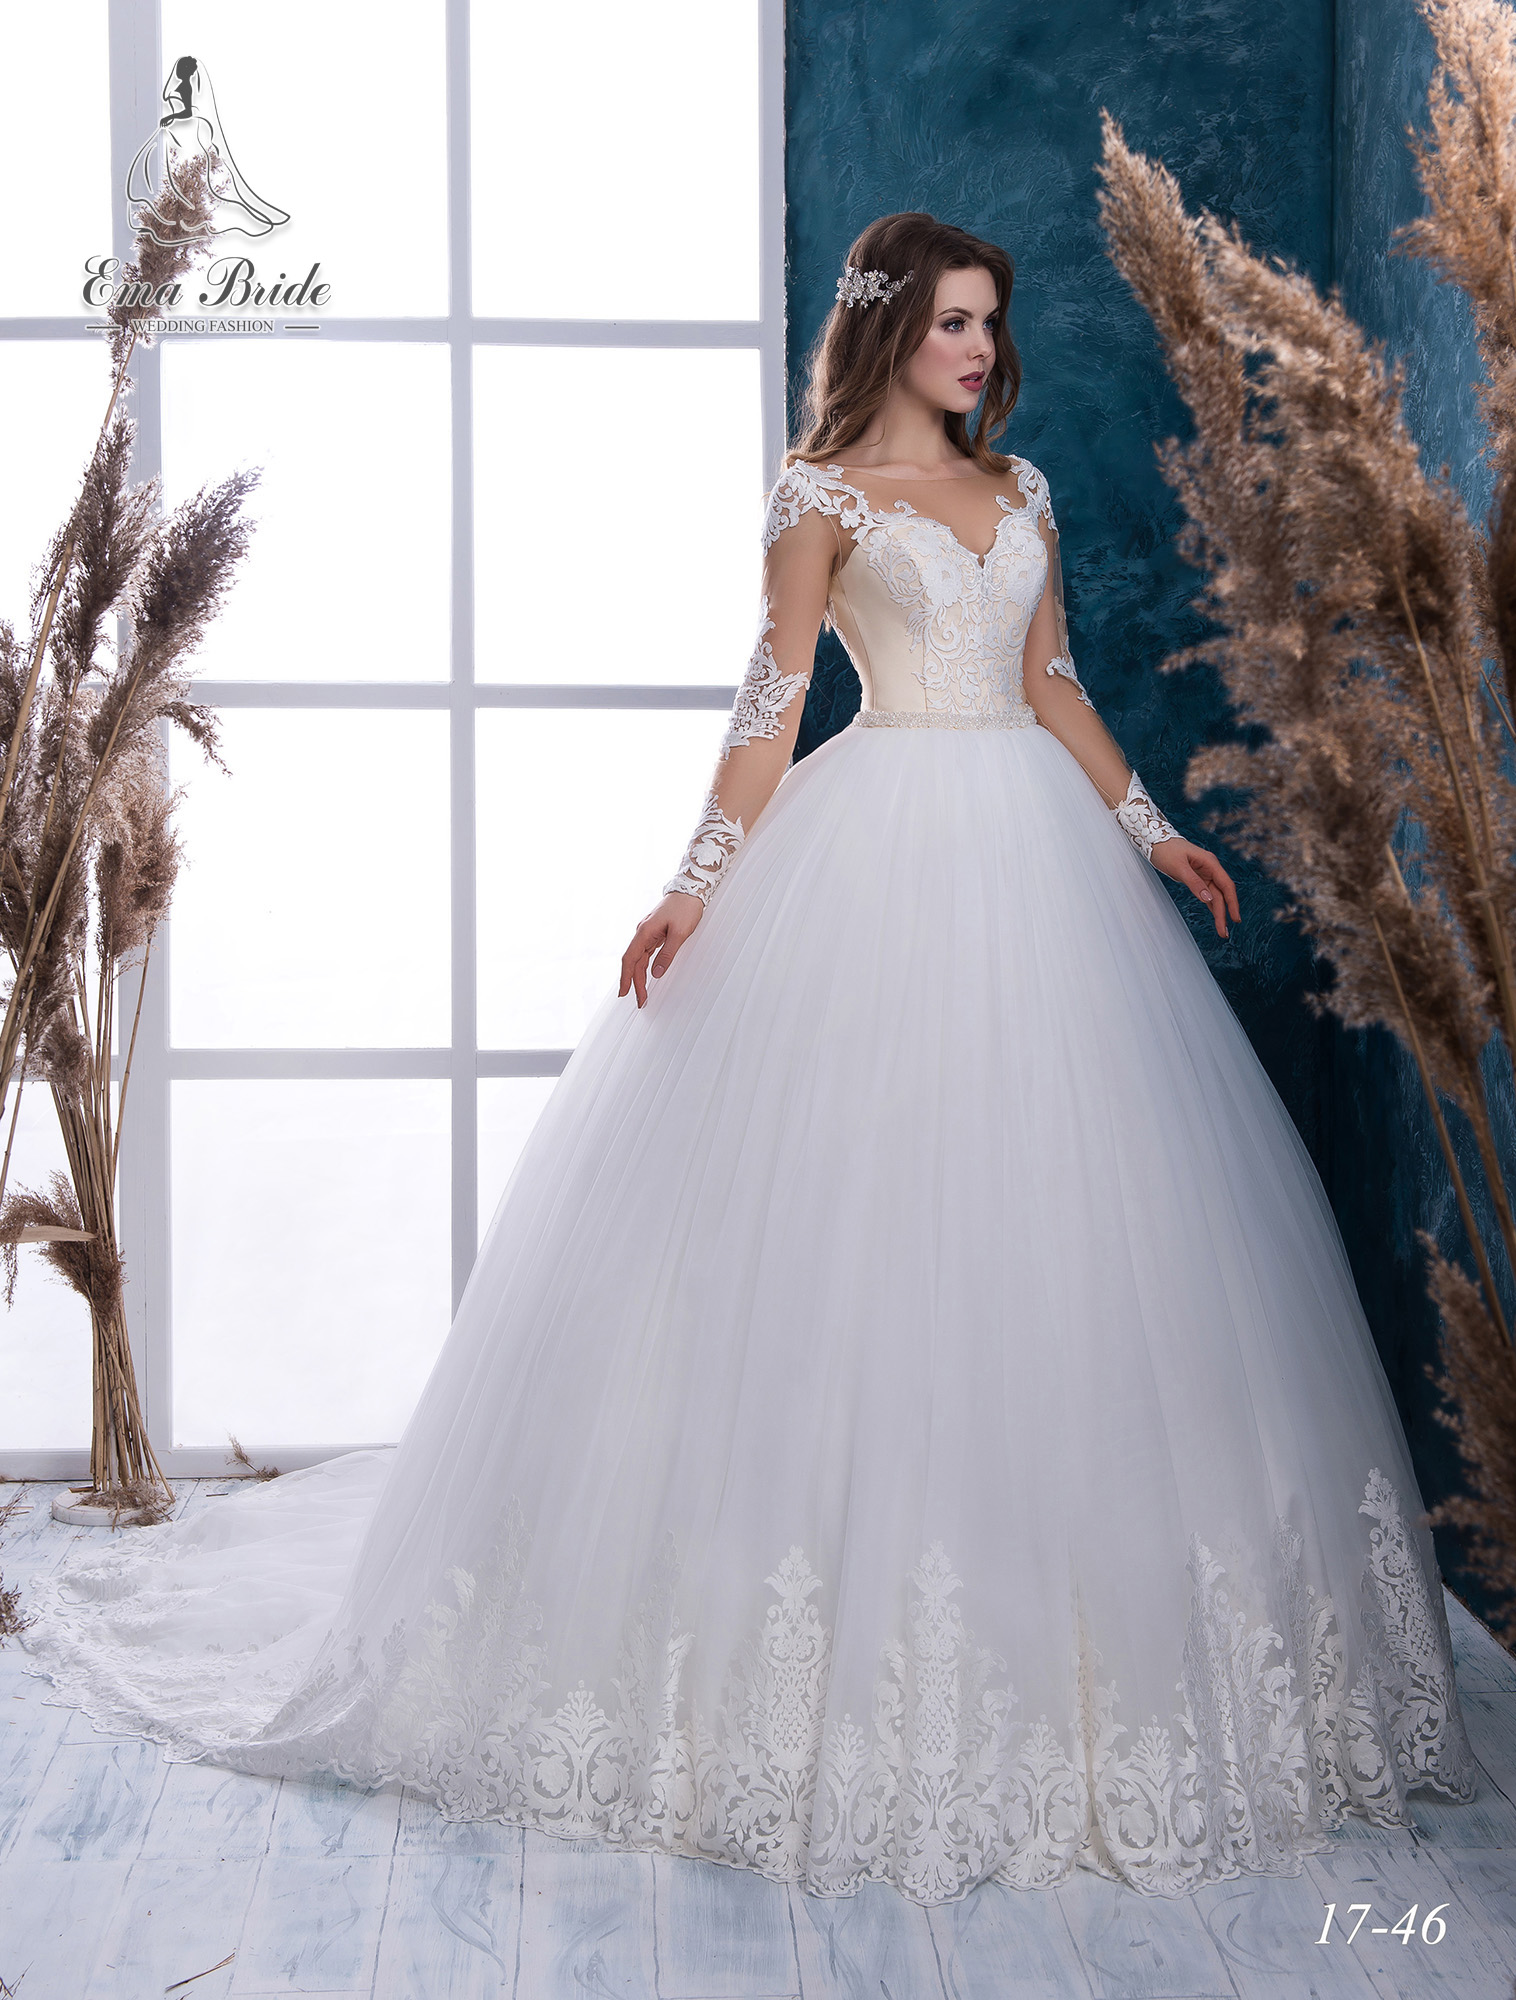 Wedding dress 17-46 wholesale